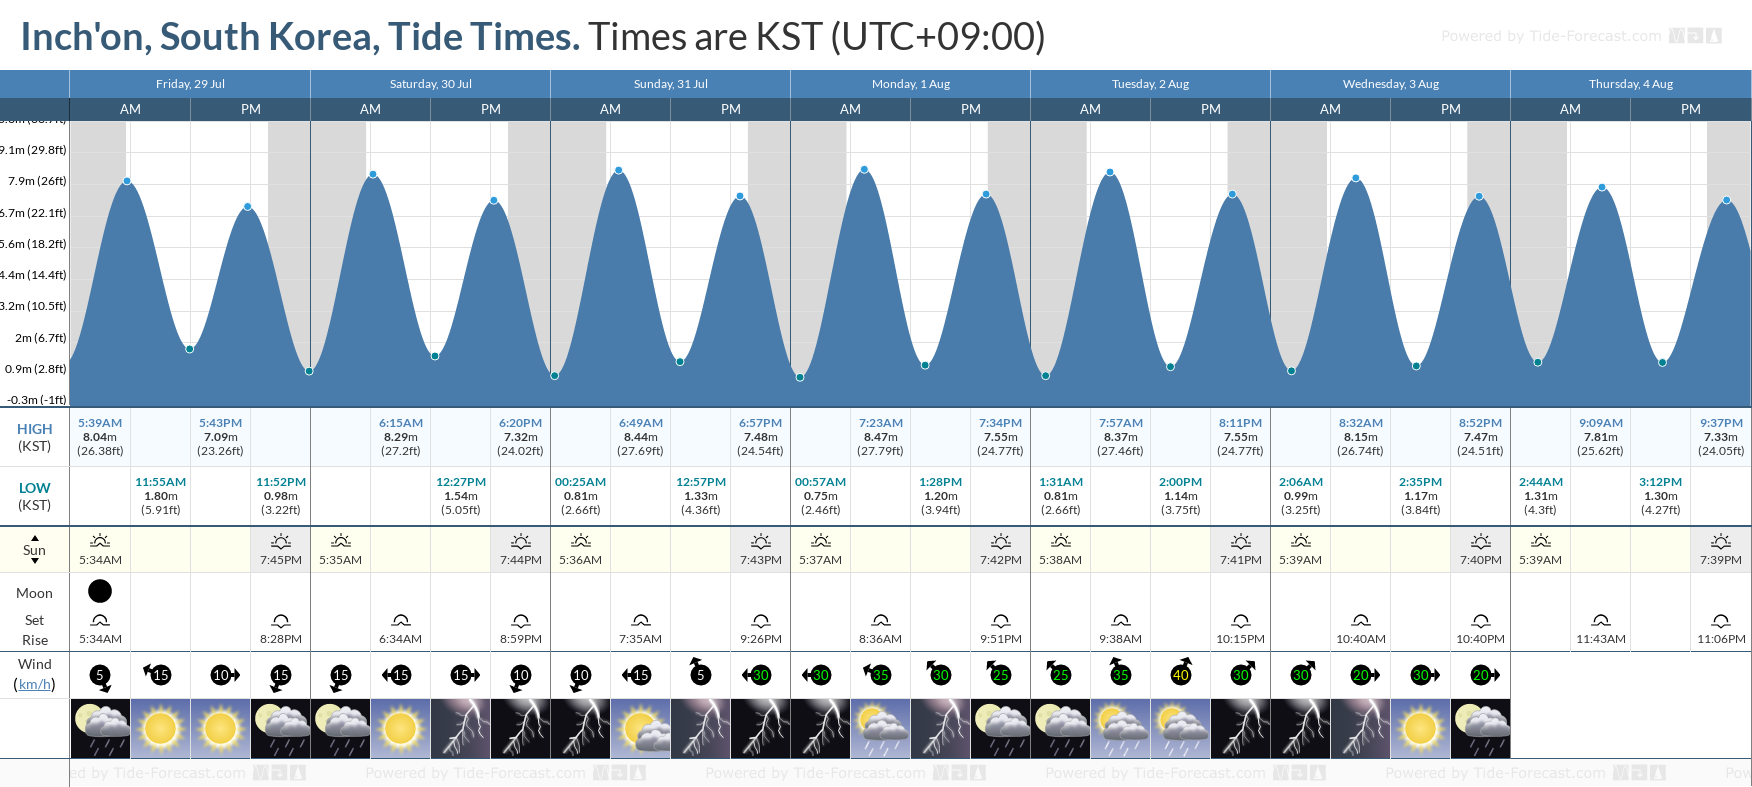 Inch'on, South Korea Tide Chart including high and low tide tide times for the next 7 days